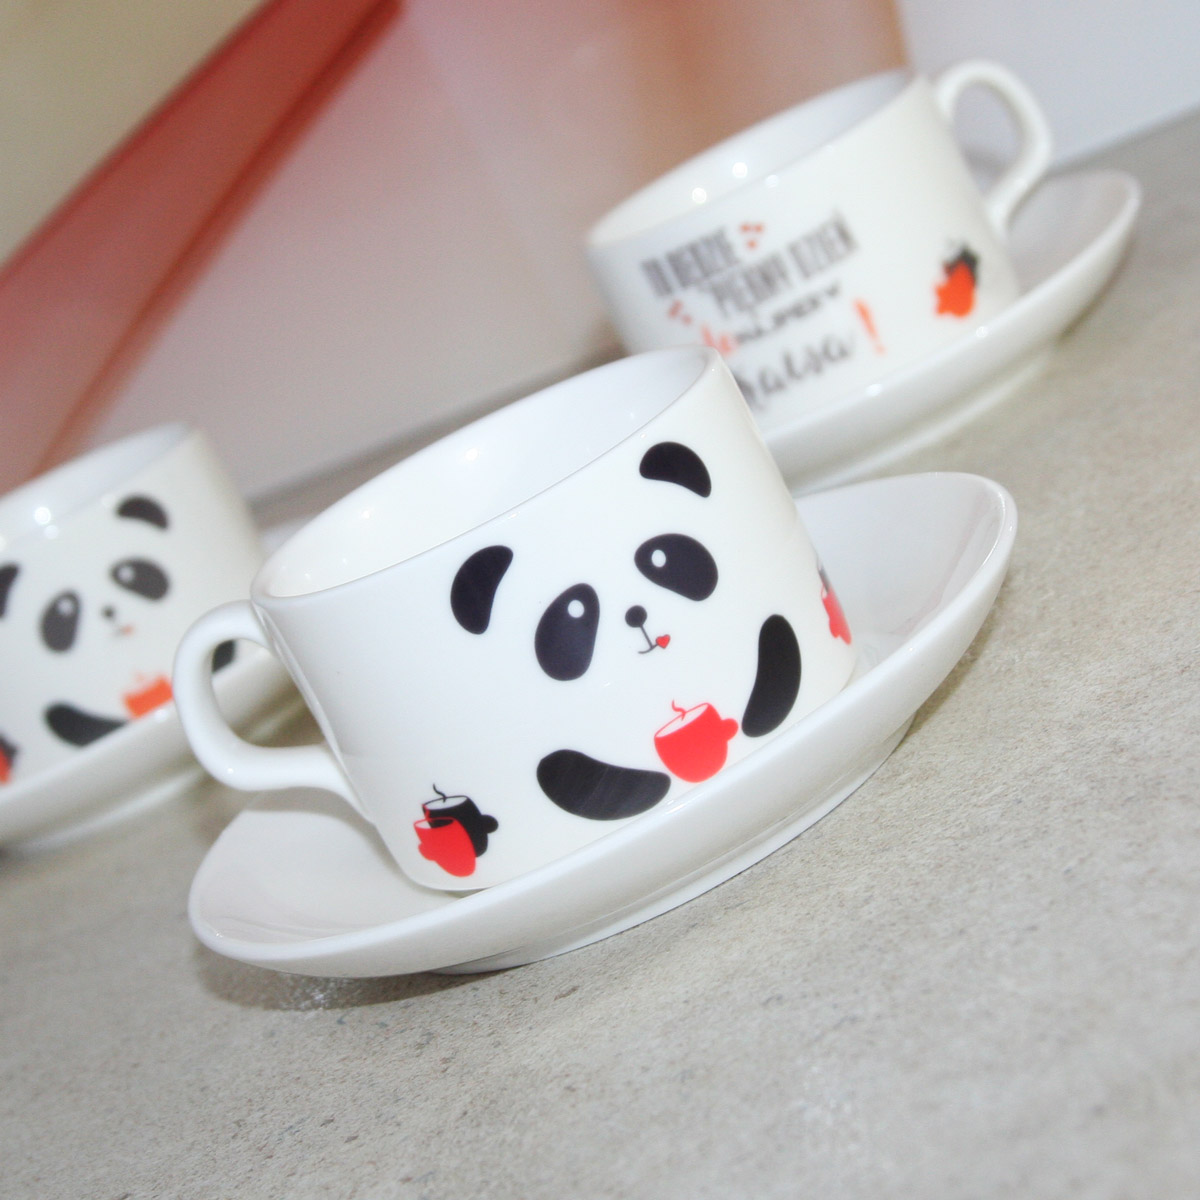 Cup with saucer and spoon for sublimation